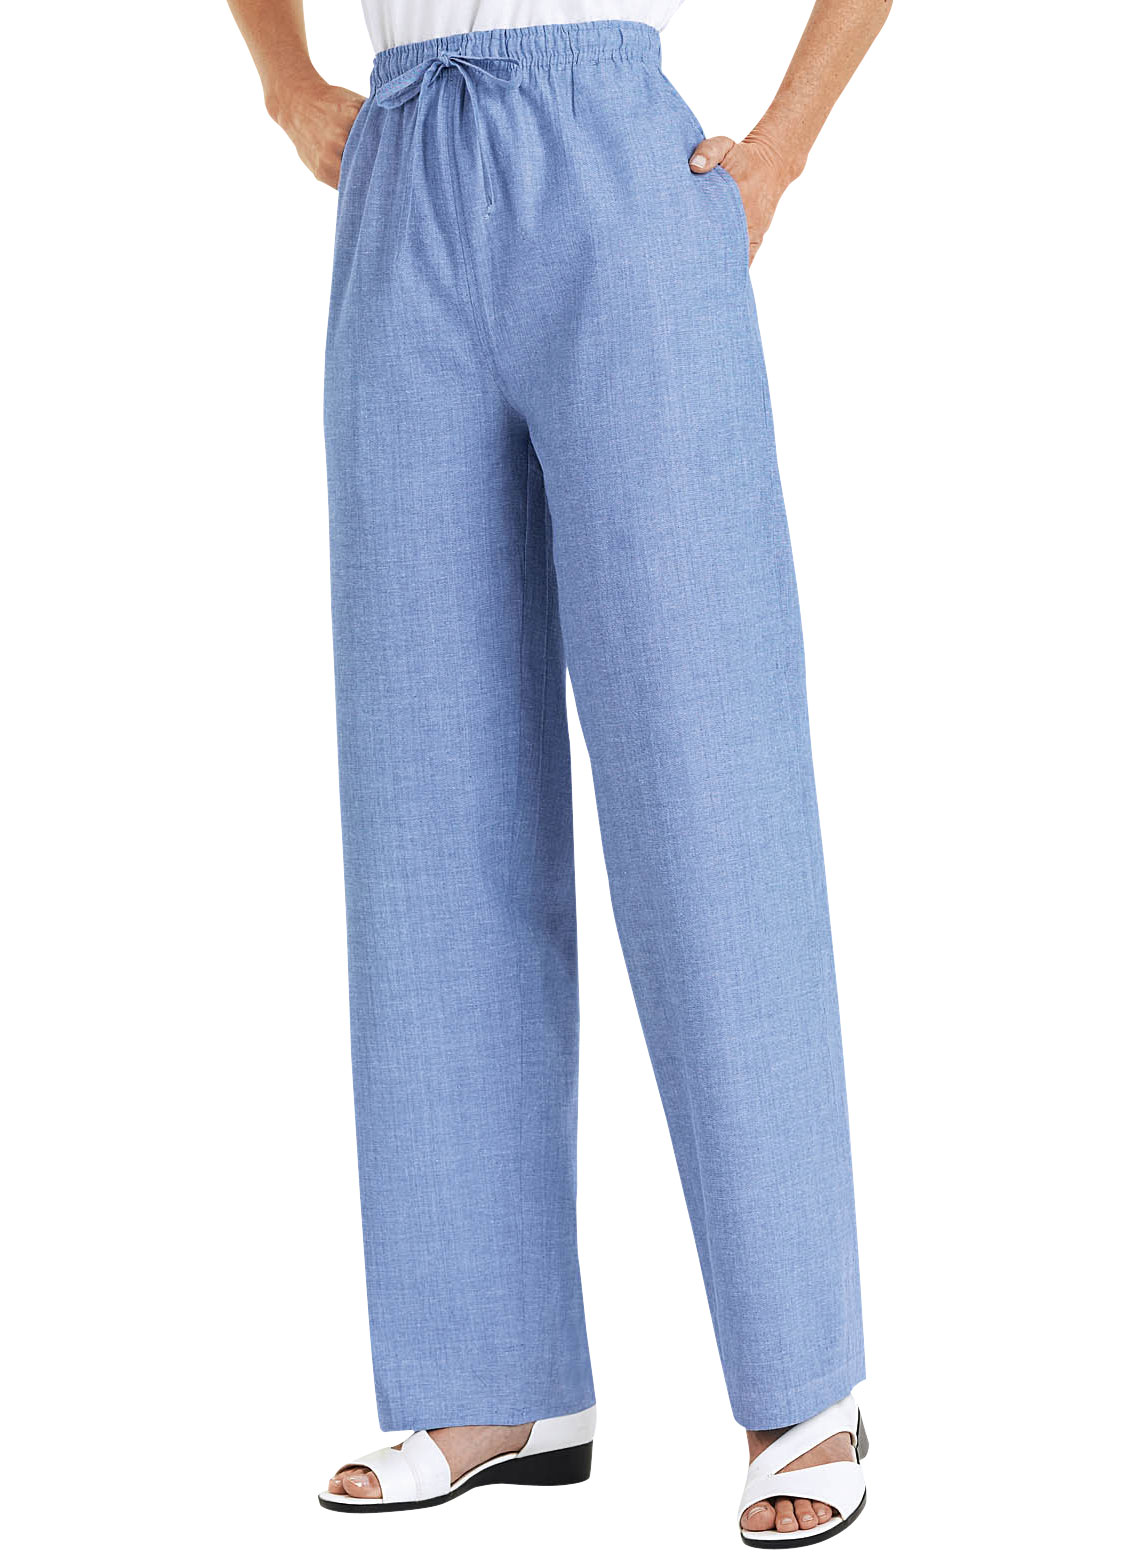 Creative Lafayette 148 New York Stretch Cotton Sateen Ankle Pants (For Women)